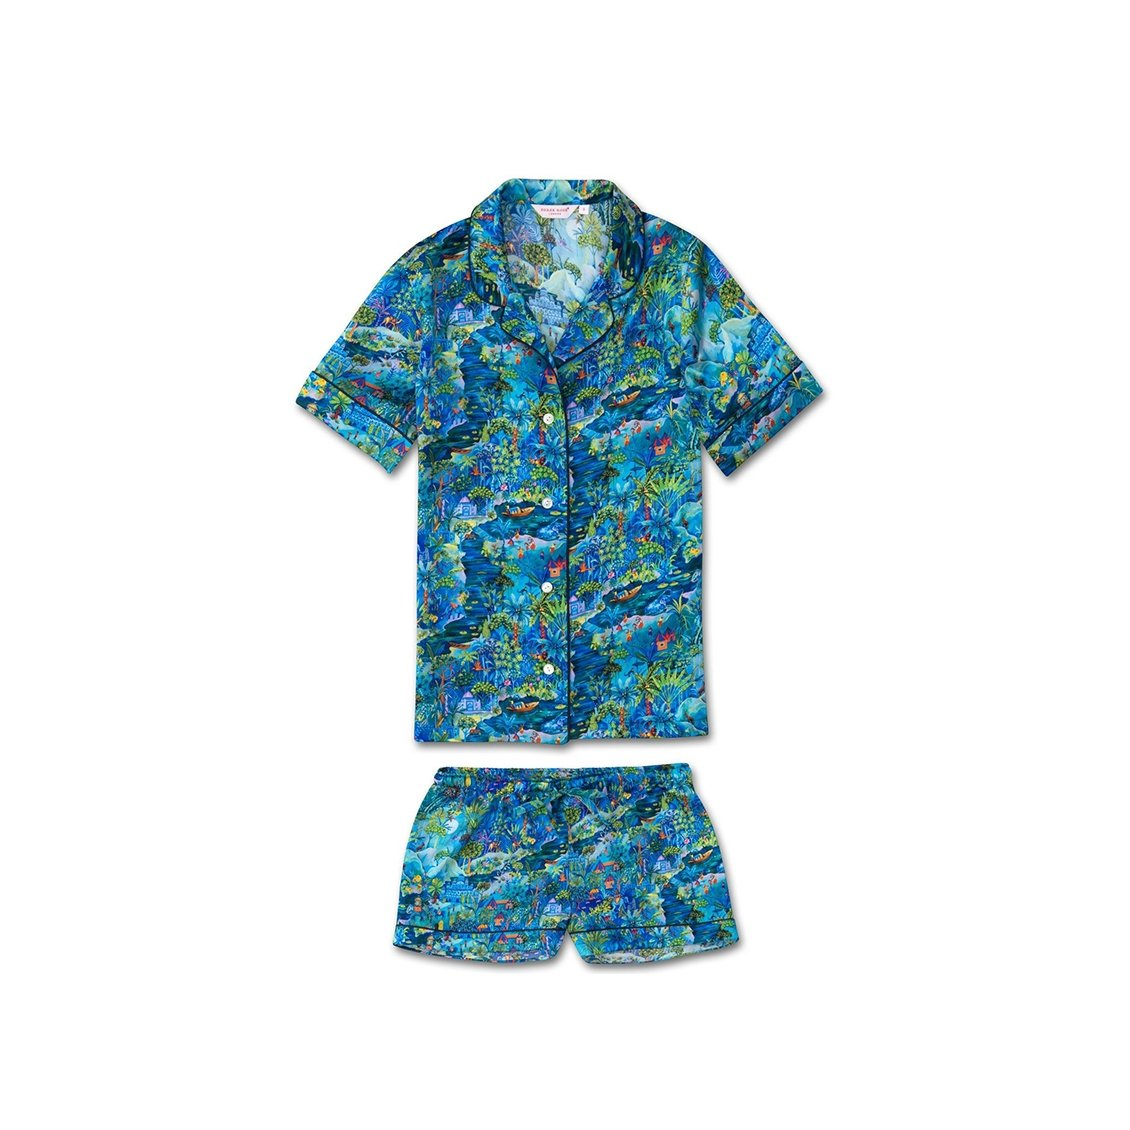 Women's Shortie Pyjamas Brindisi 24 Silk Multi